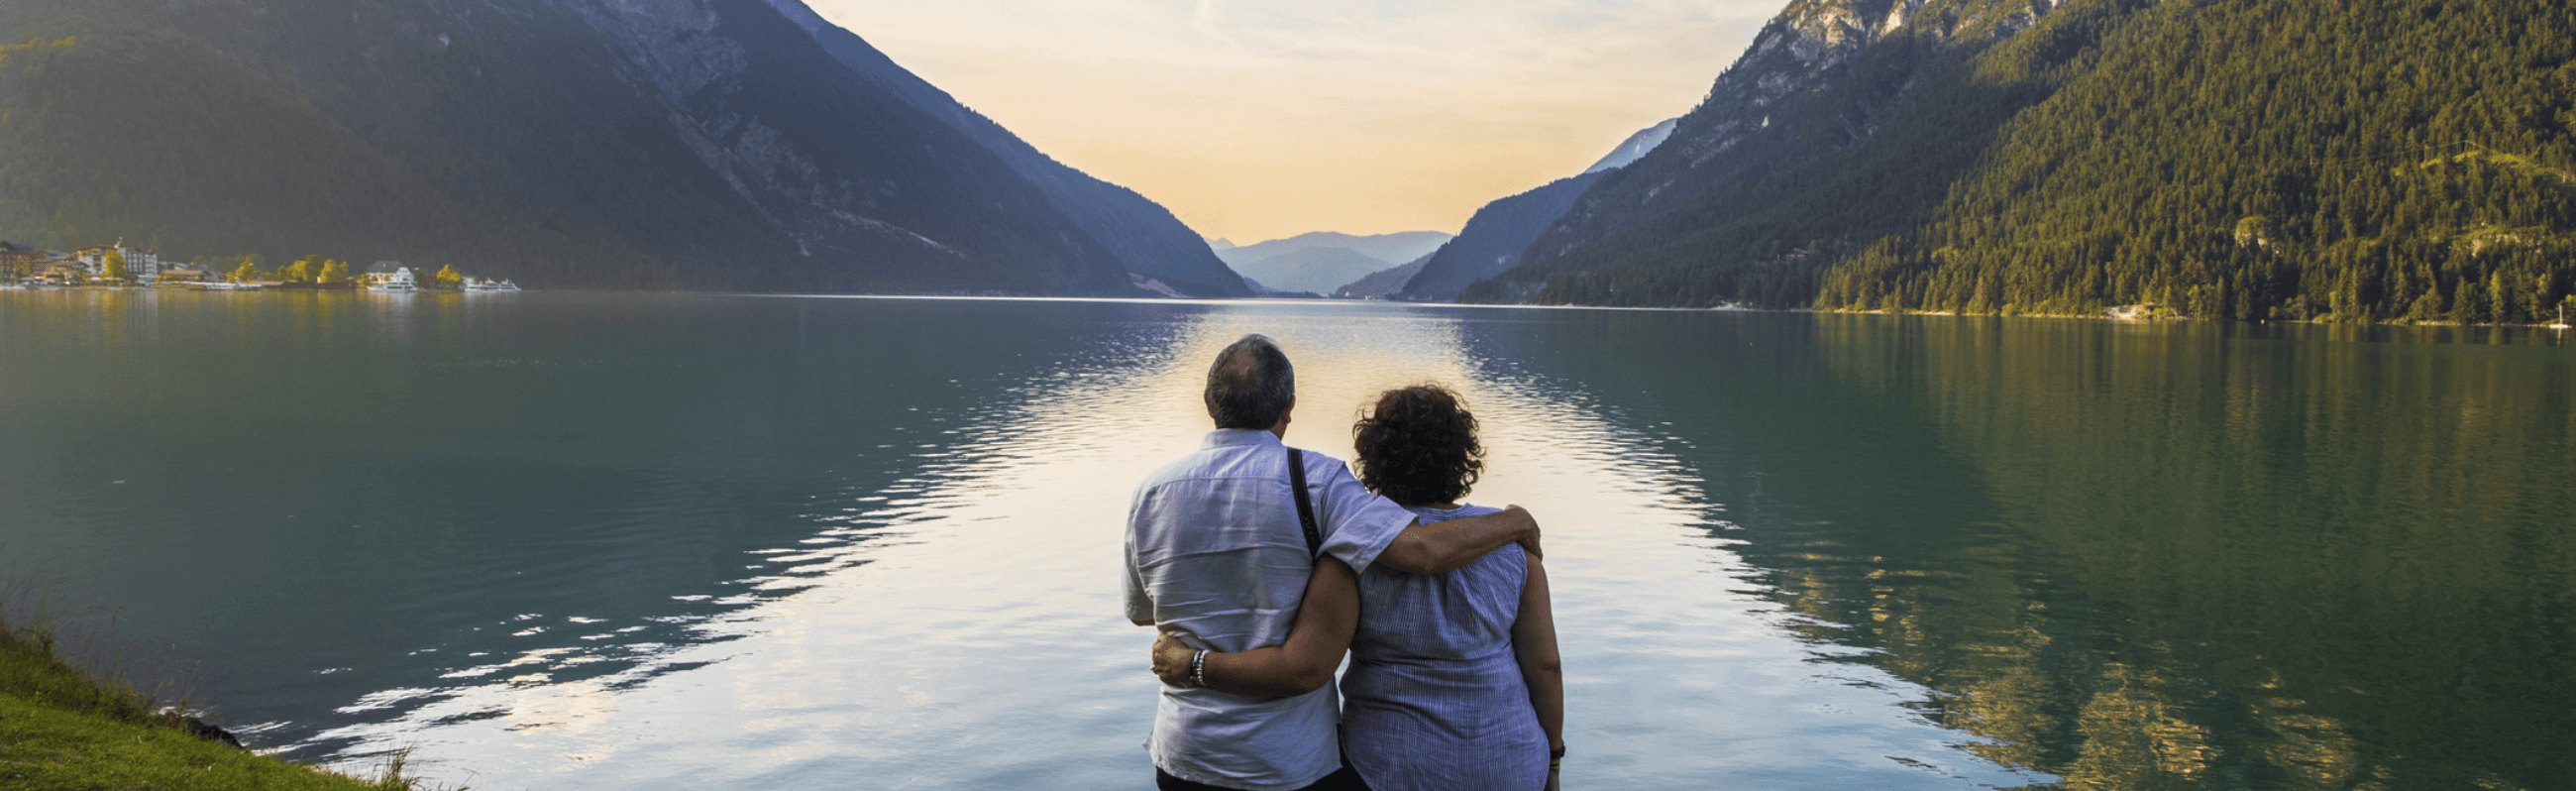 Photograph of a couple enjoying a sunset over a lake